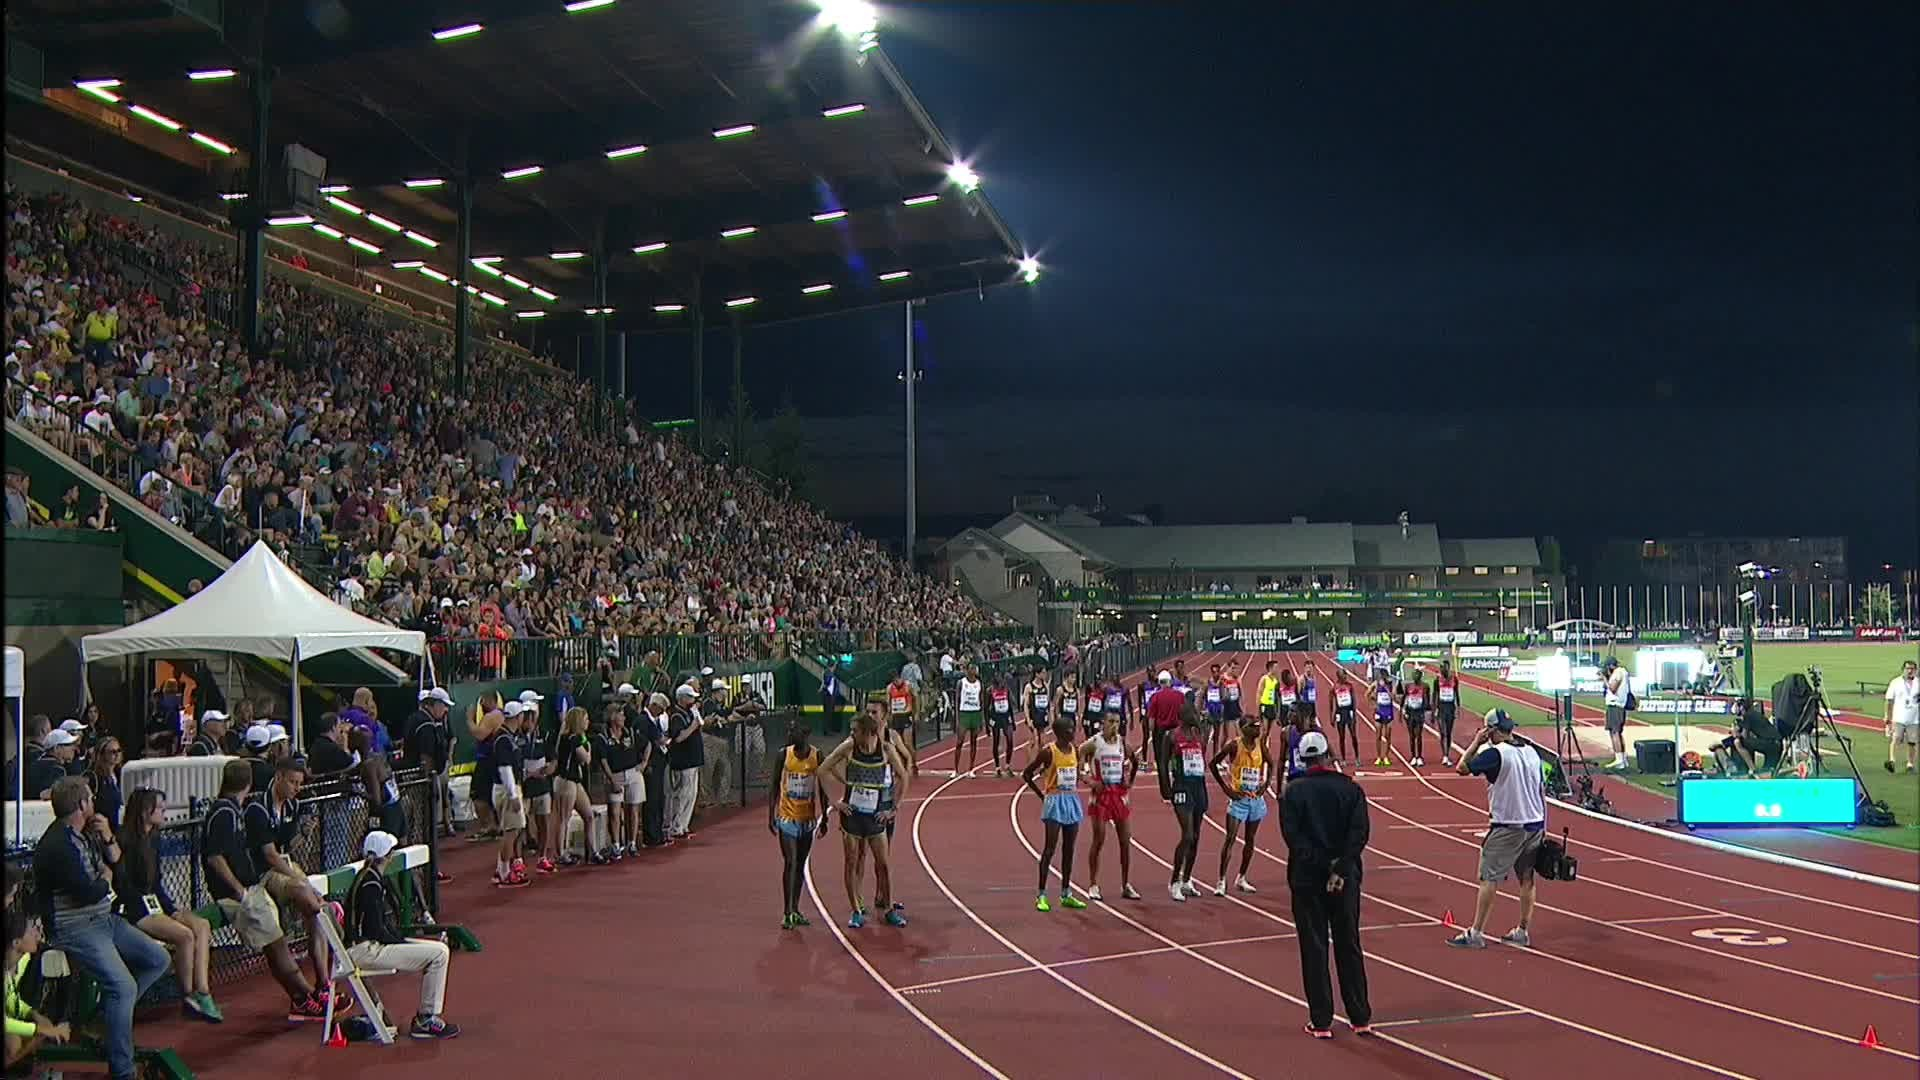 I am skipping the biggest meets that remain at Hayward Field, just too sad to go back to this doomed place